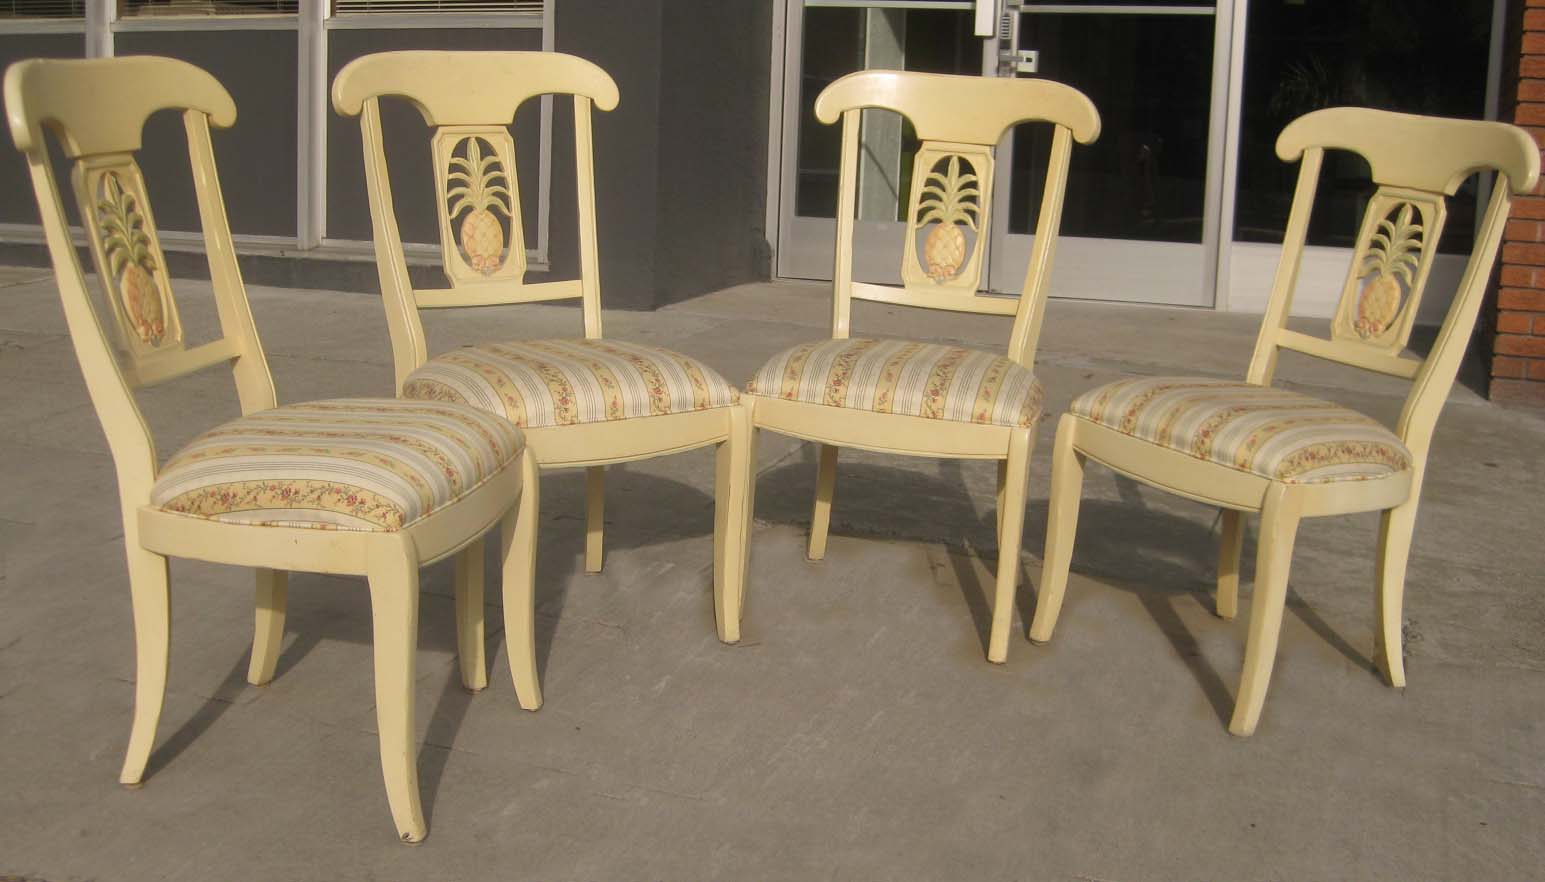 Uhuru Furniture Collectibles Sold 4 Dining Chairs 90